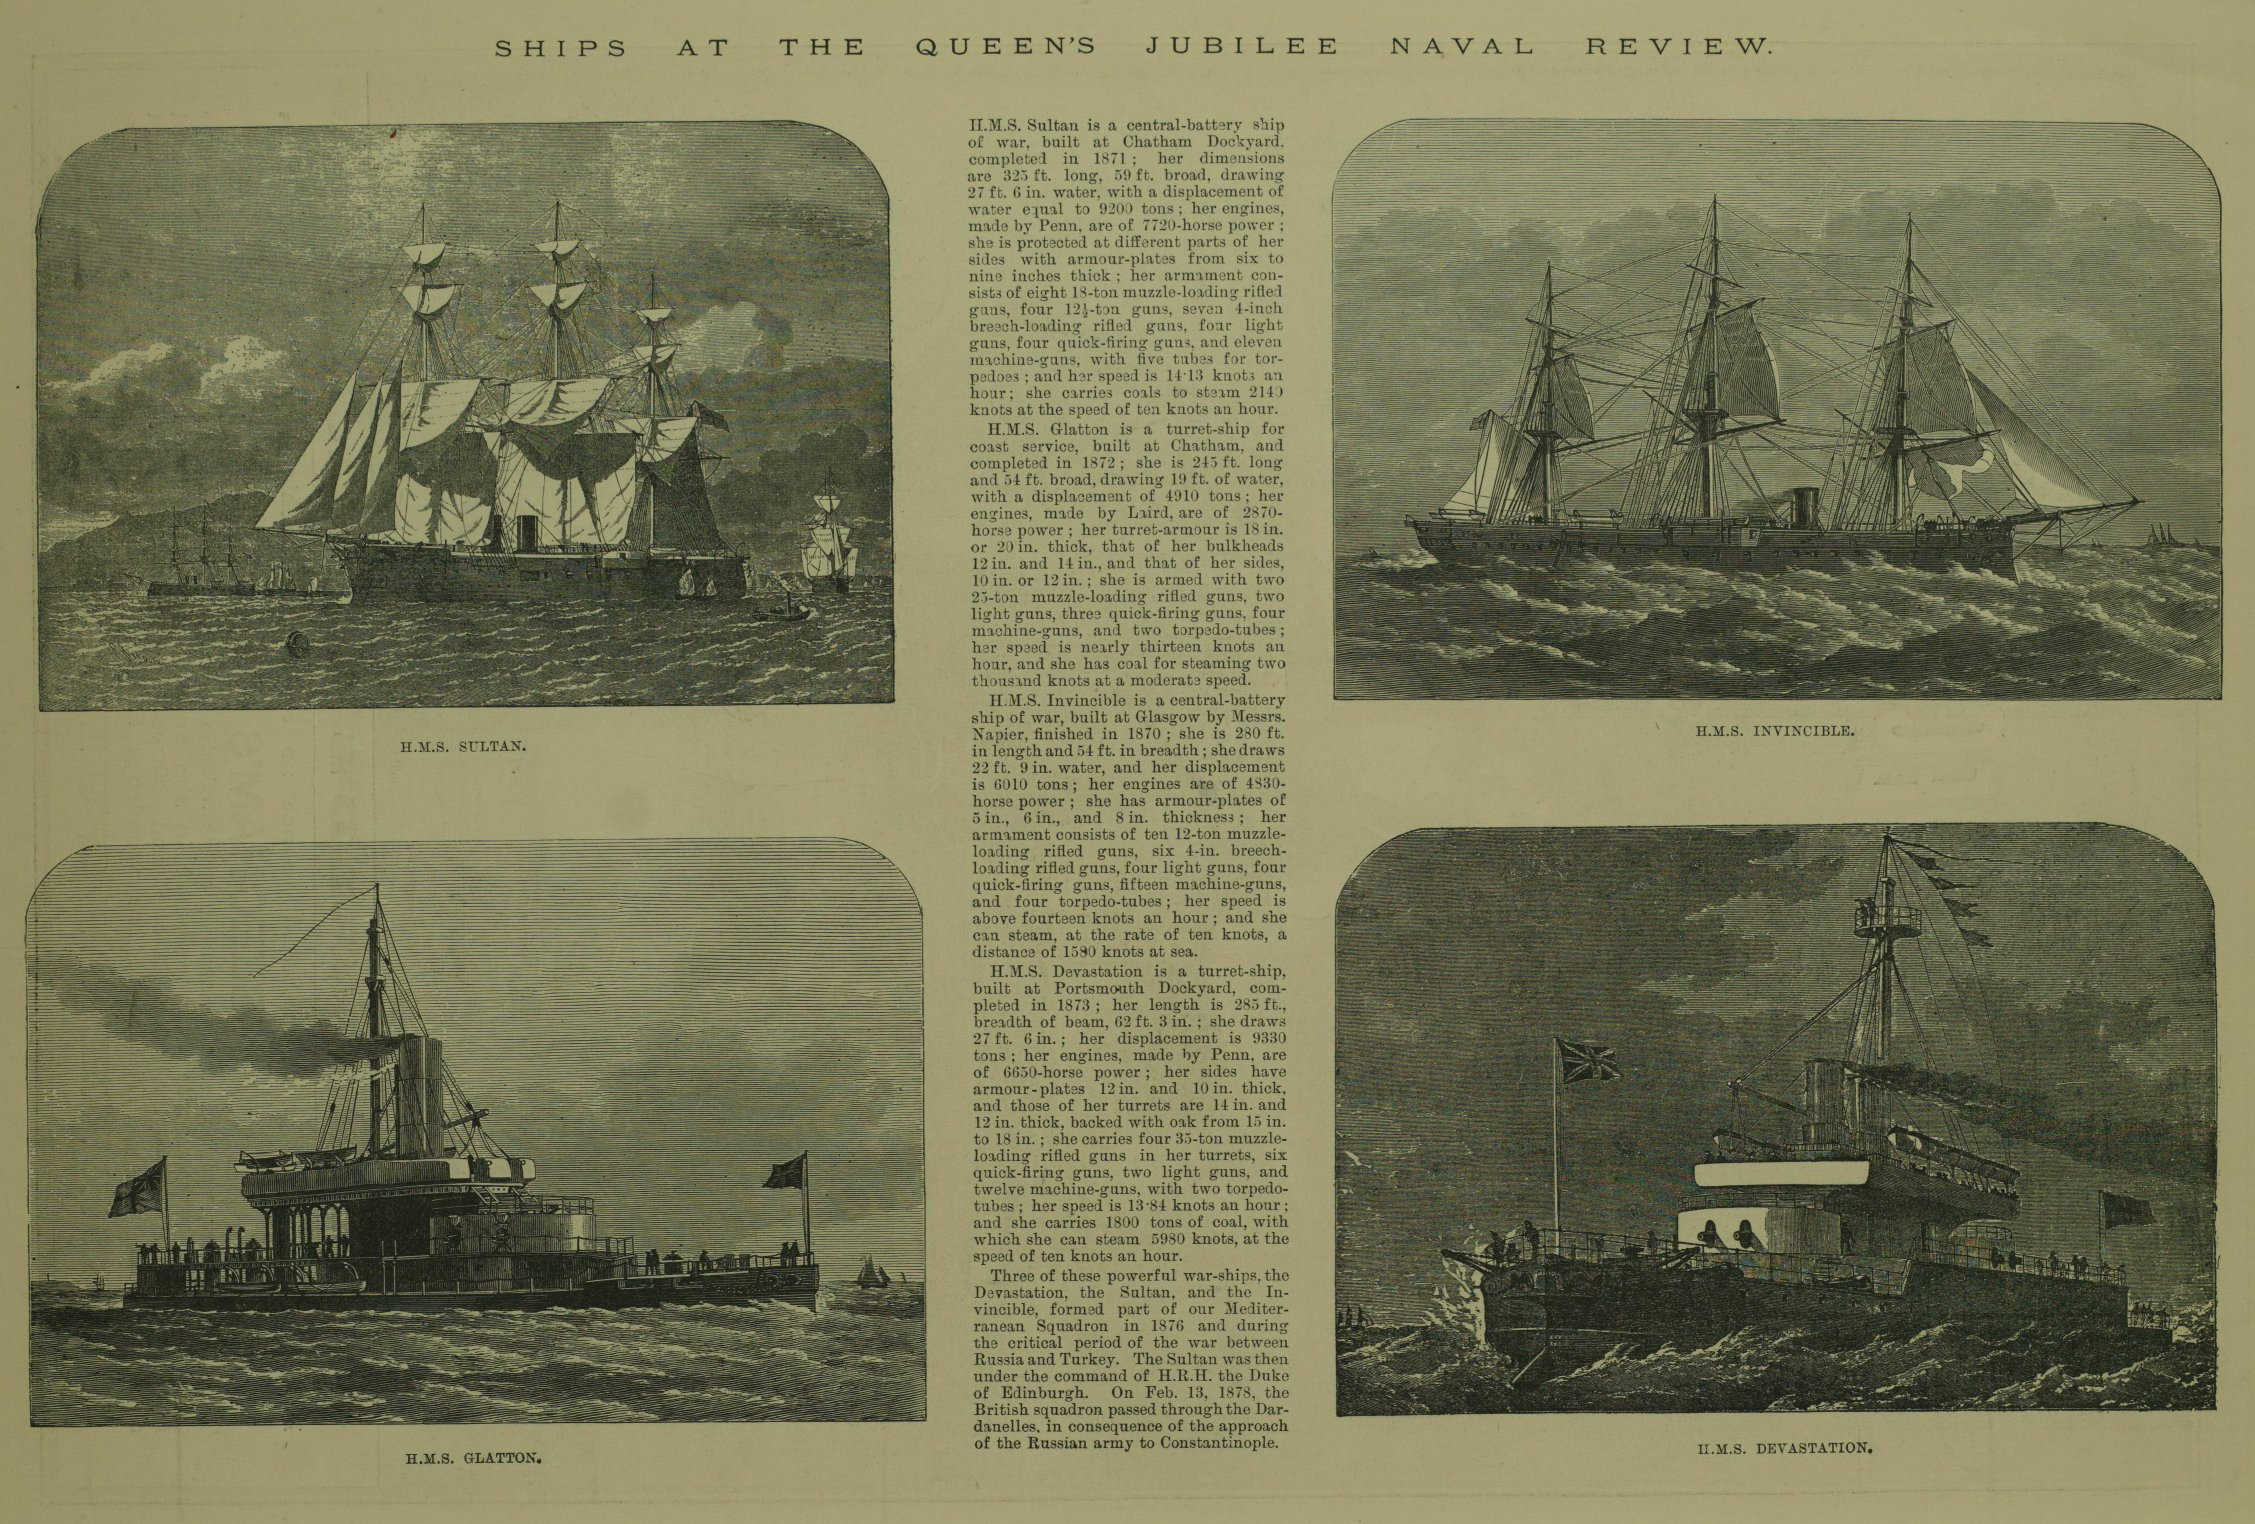 intricate illustrations of British warships from 1887